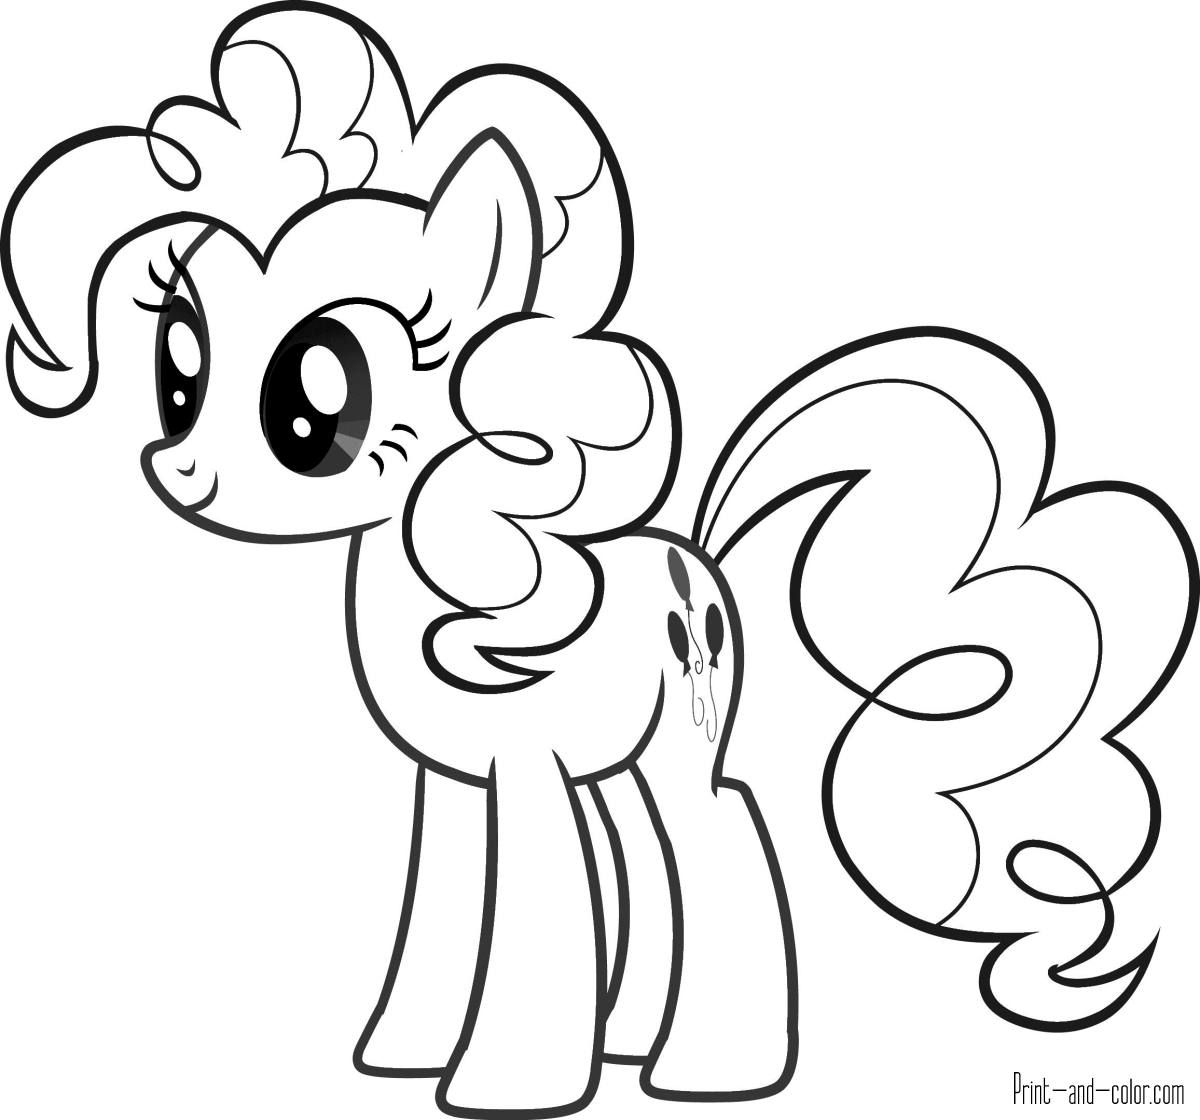 mlp coloring book games my little pony coloring pages friendship is magic team mlp games coloring book